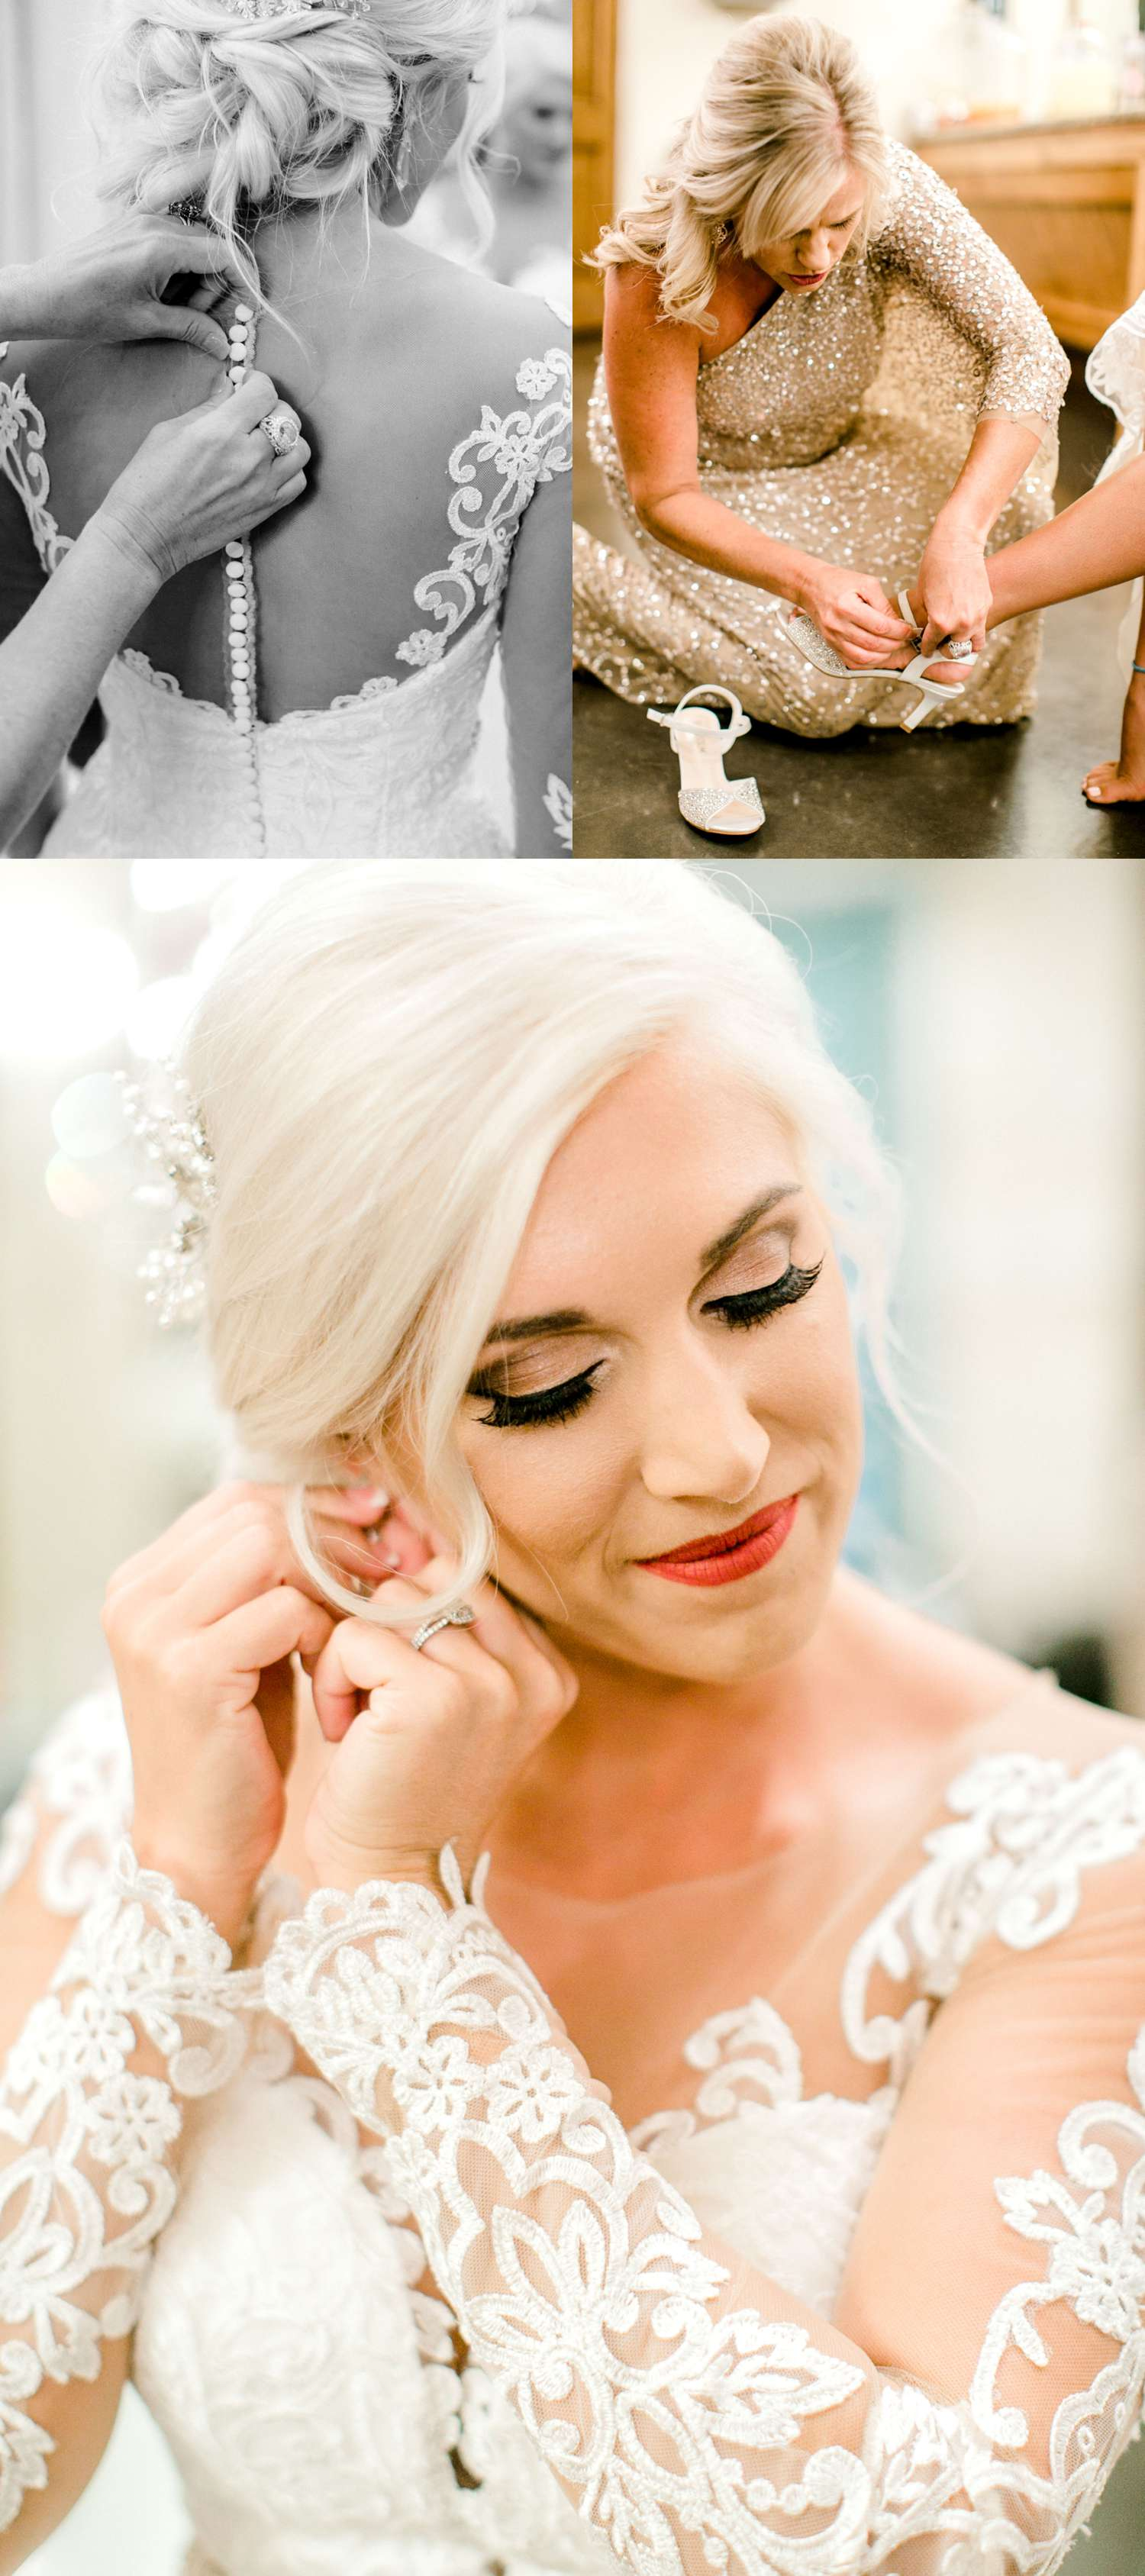 JESSICA+LYLE+NEEL+THE_SPRINGS_EVENTS_WEDDING_OKLAHOMA_ALLEEJ_PHOTOGRAPHER_0012.jpg